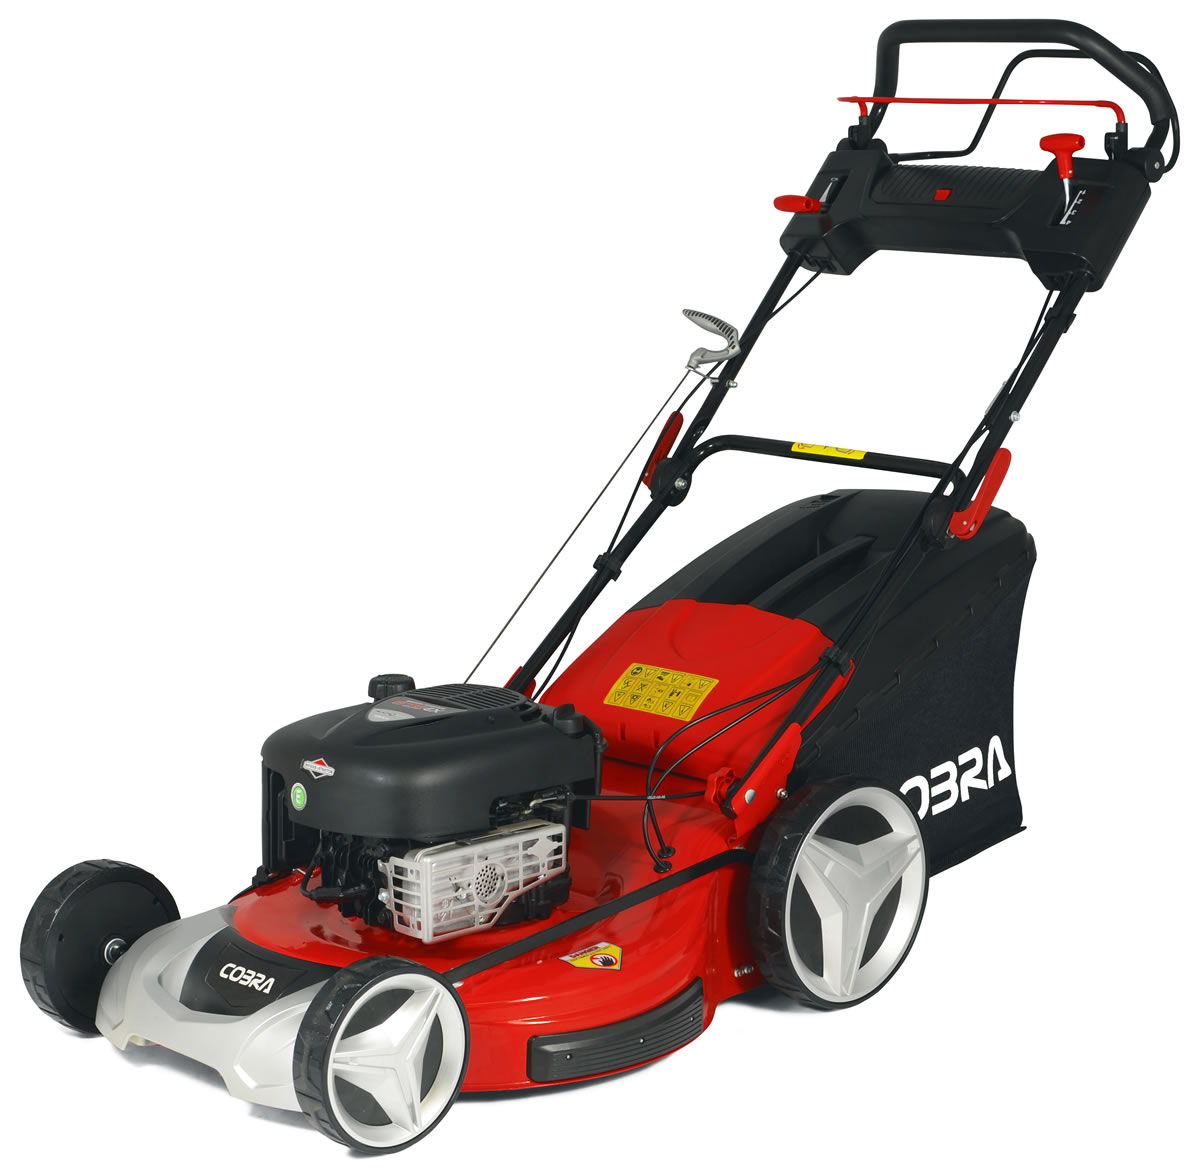 COBRA MX564SPB Petrol Lawn Mower